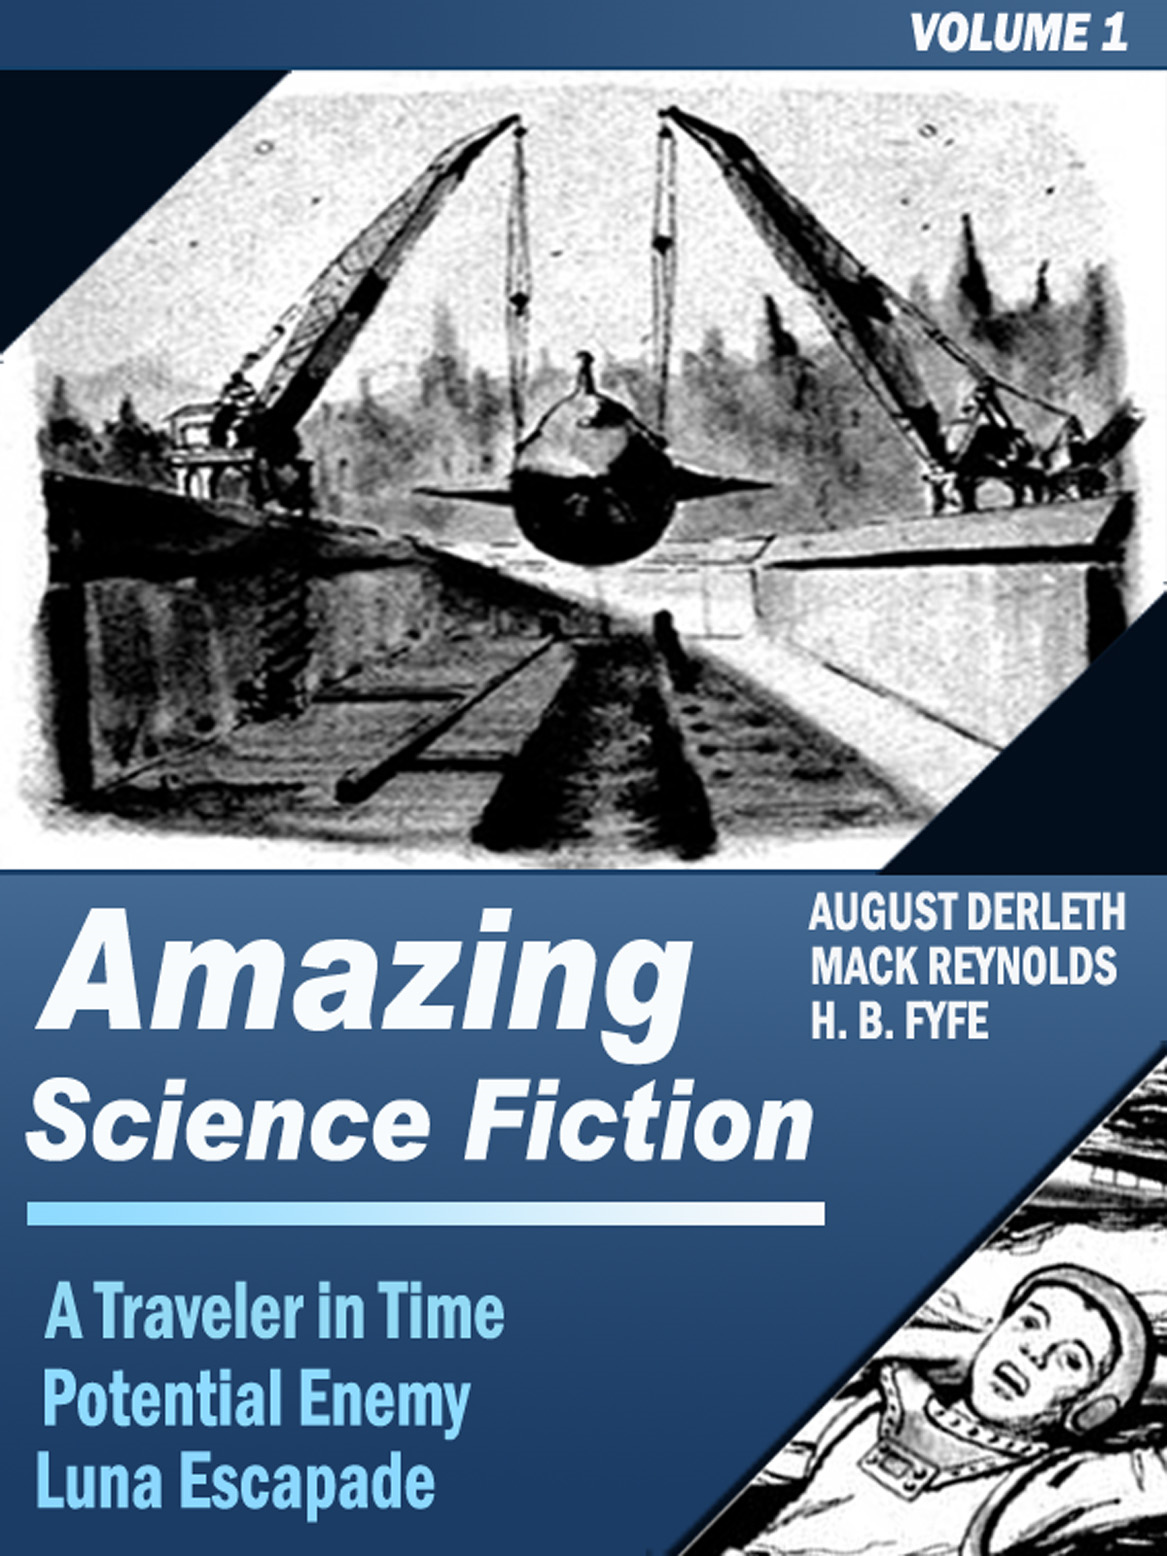 Amazing Science Fiction - Volume 1 (A Traveller in Time, Potential Enemy, Luna Escapade)